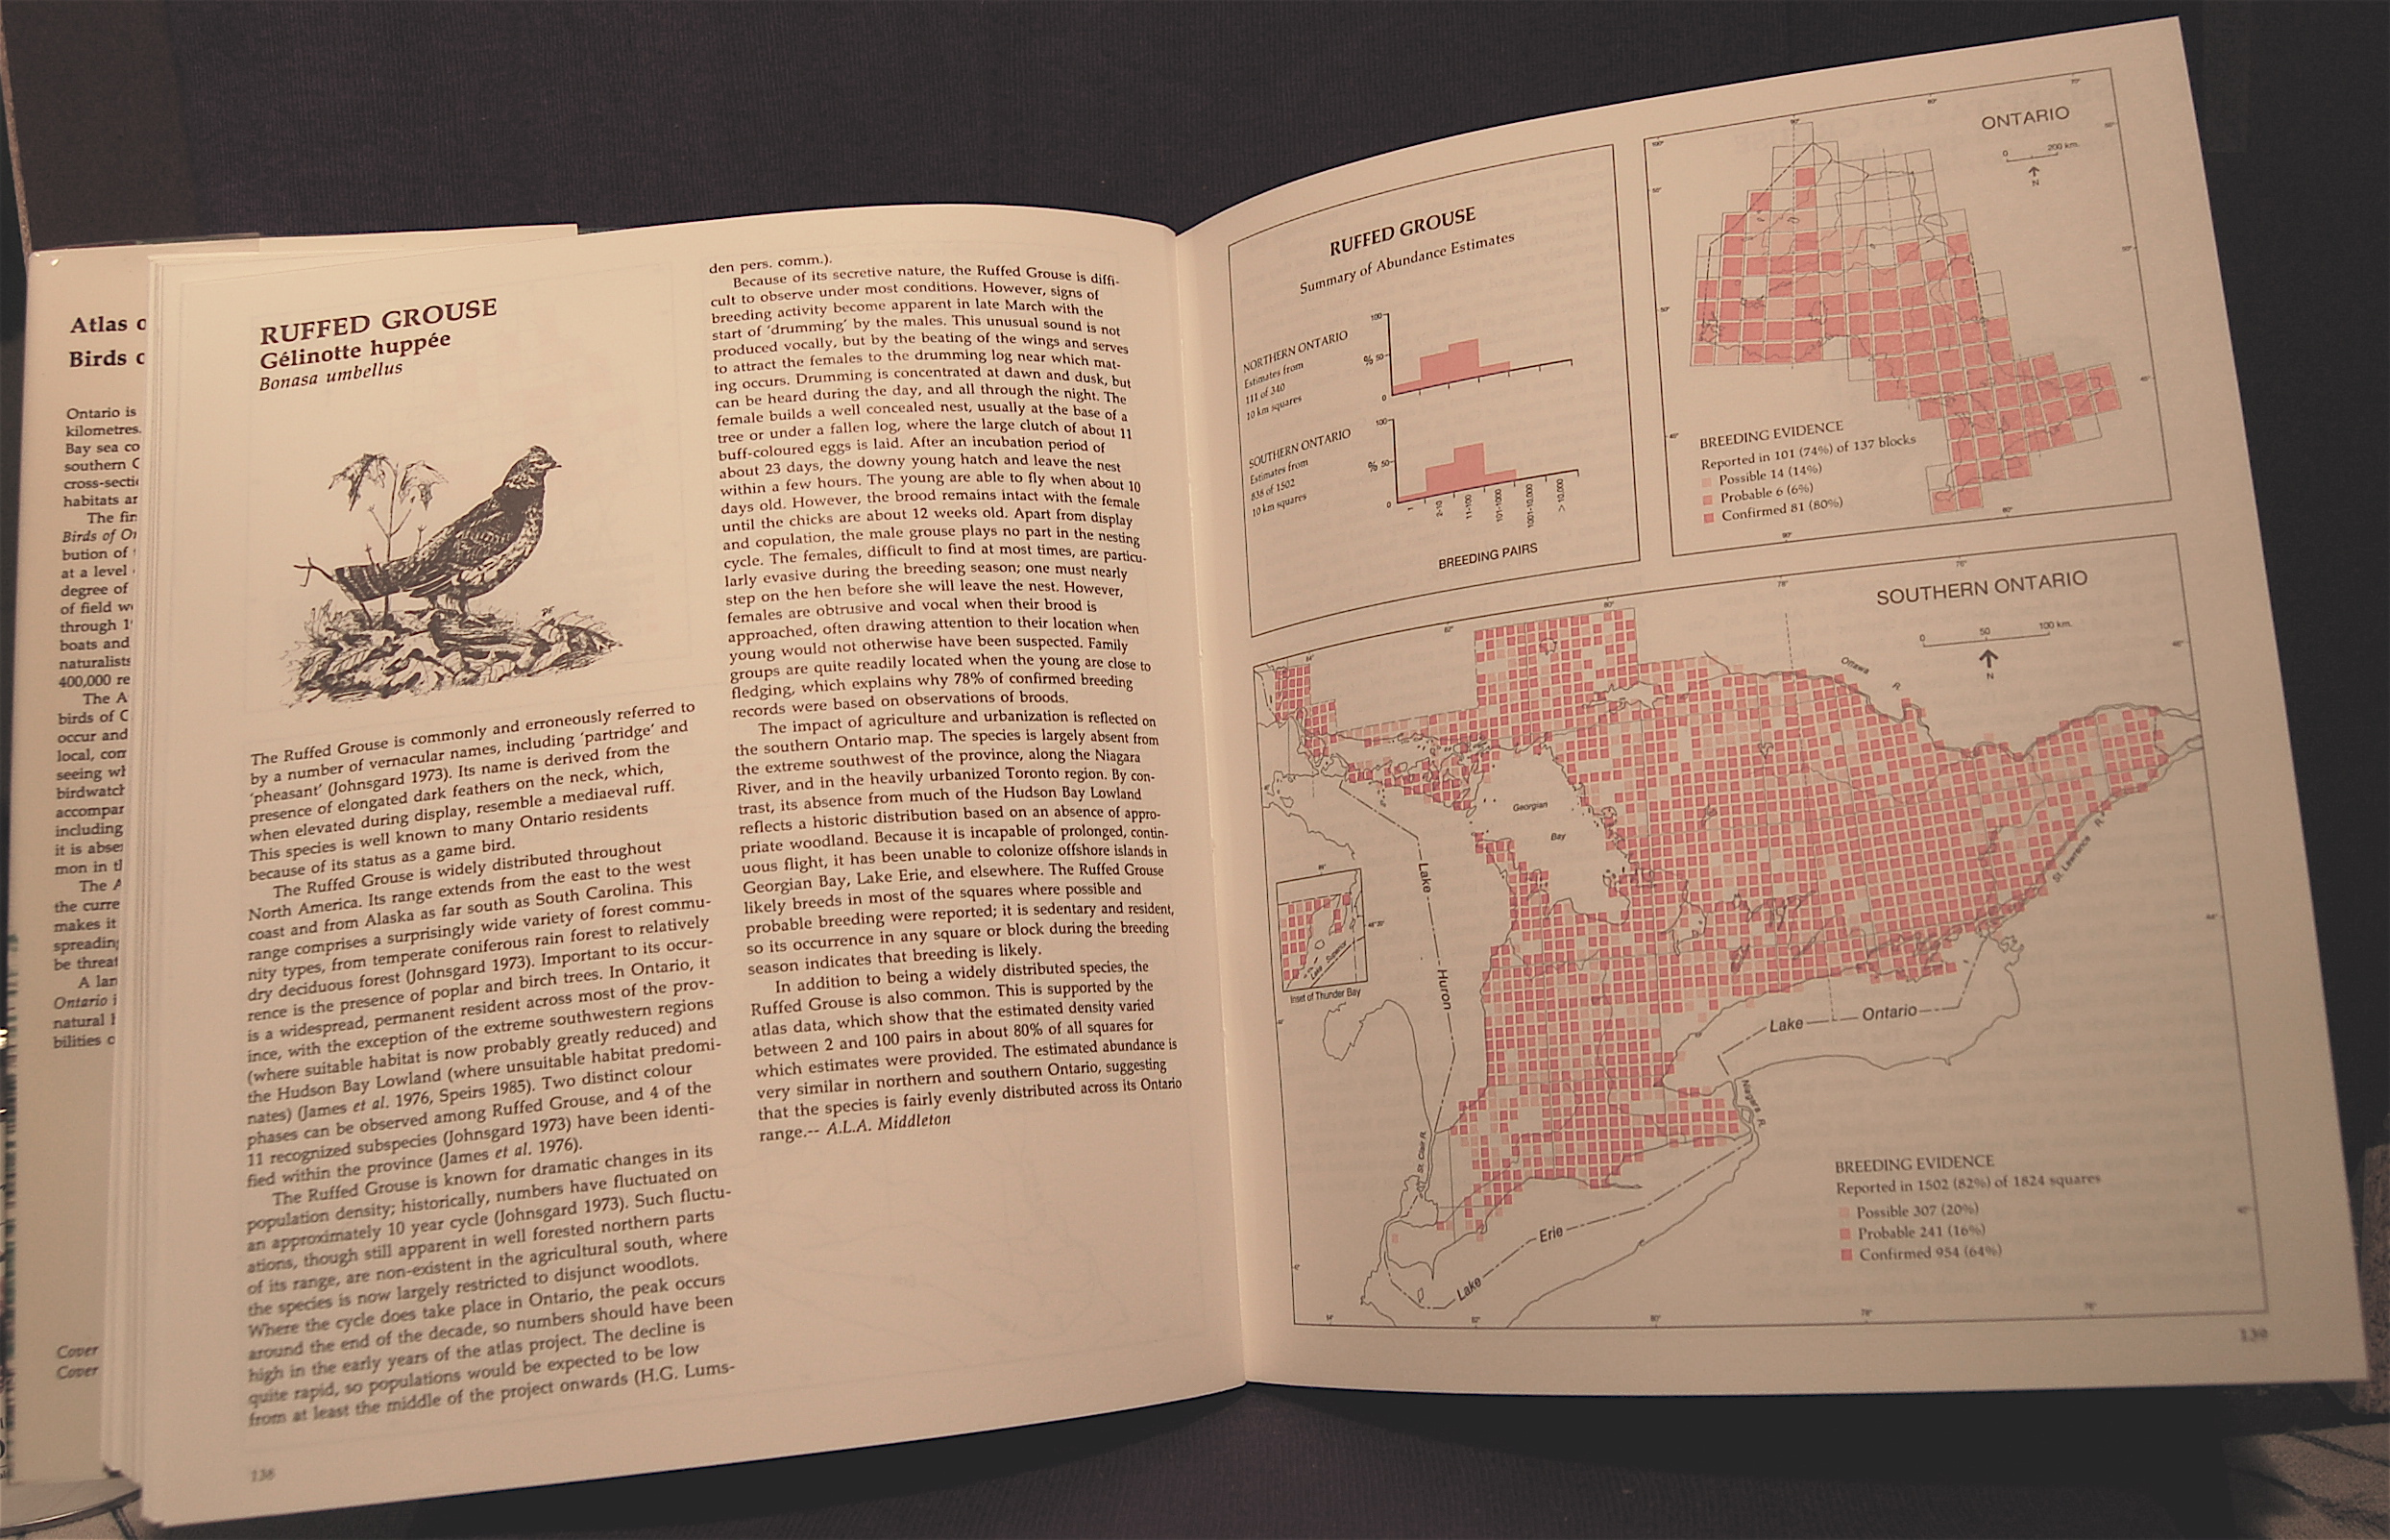 Atlas of the Breeding Birds of Ontario